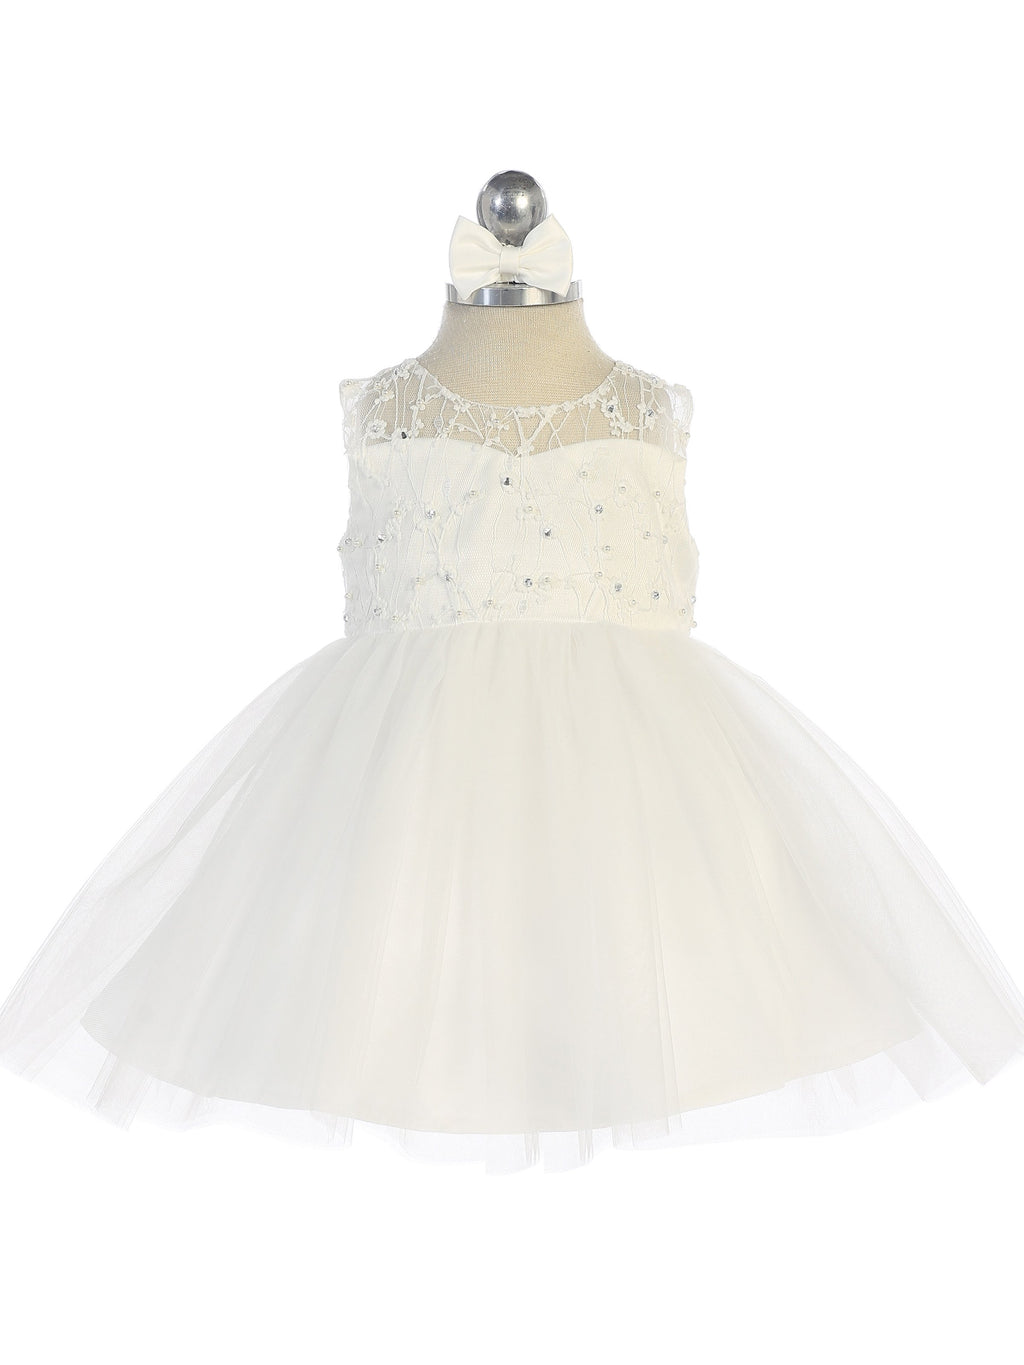 Ivory Illusion Neckline Dress with Heart Keyhole Back and Tulle Skirt